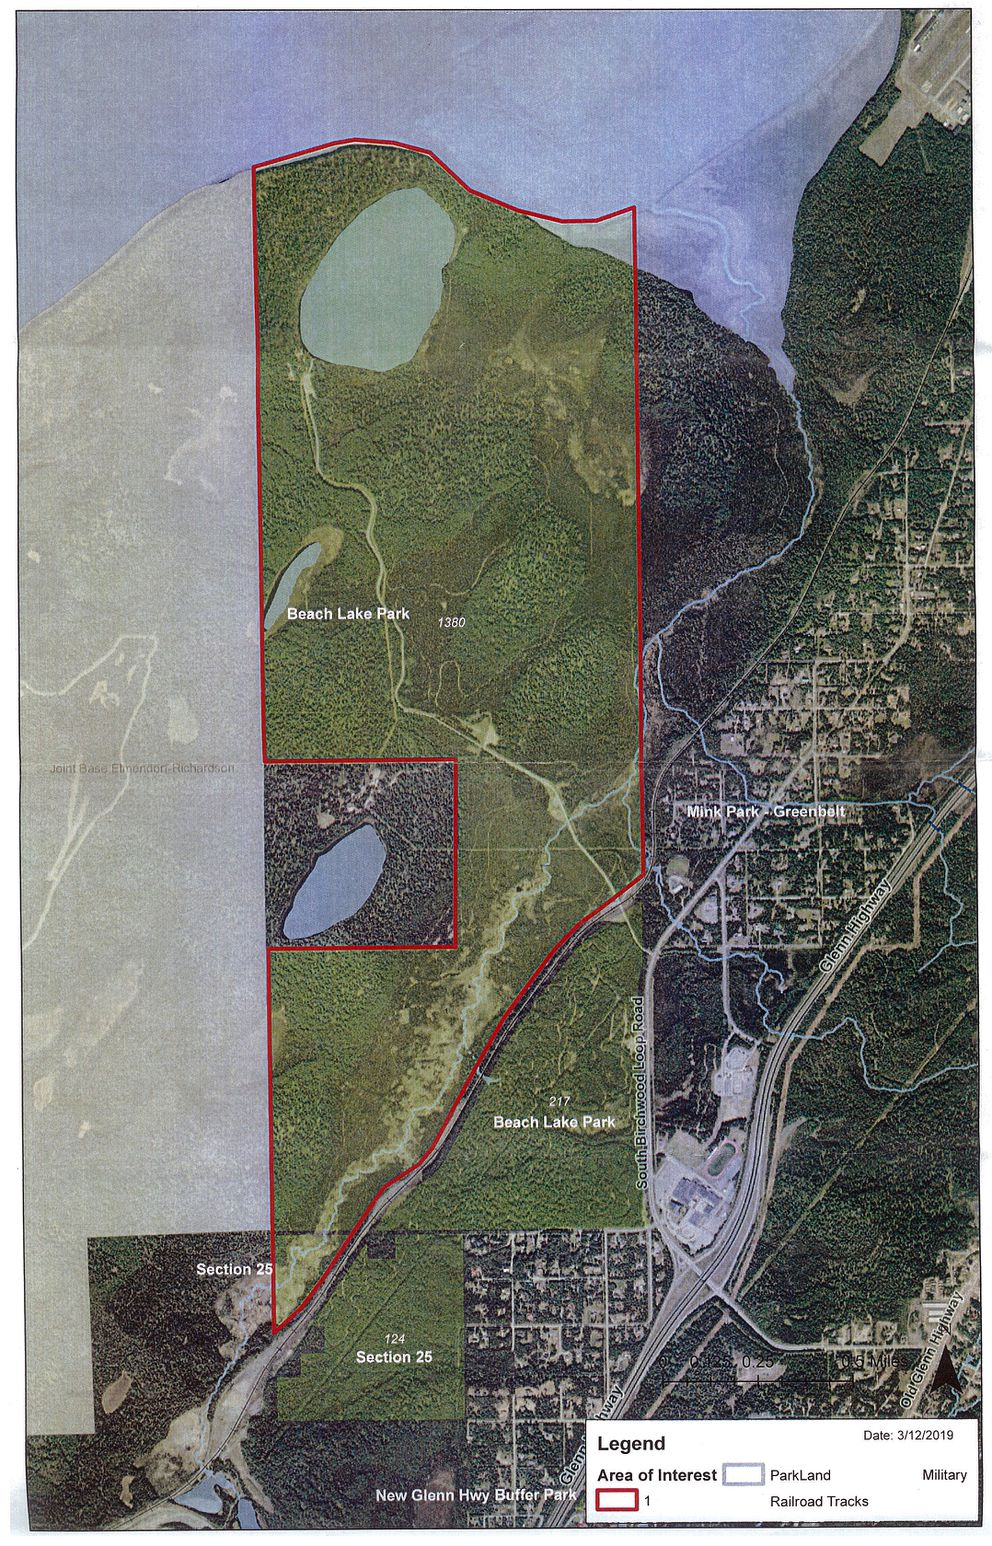 A map showing the area of Beach Lake Park under consideration for a conservation land easement. (Courtesy Eagle River-Chugiak Parks and Recreation)